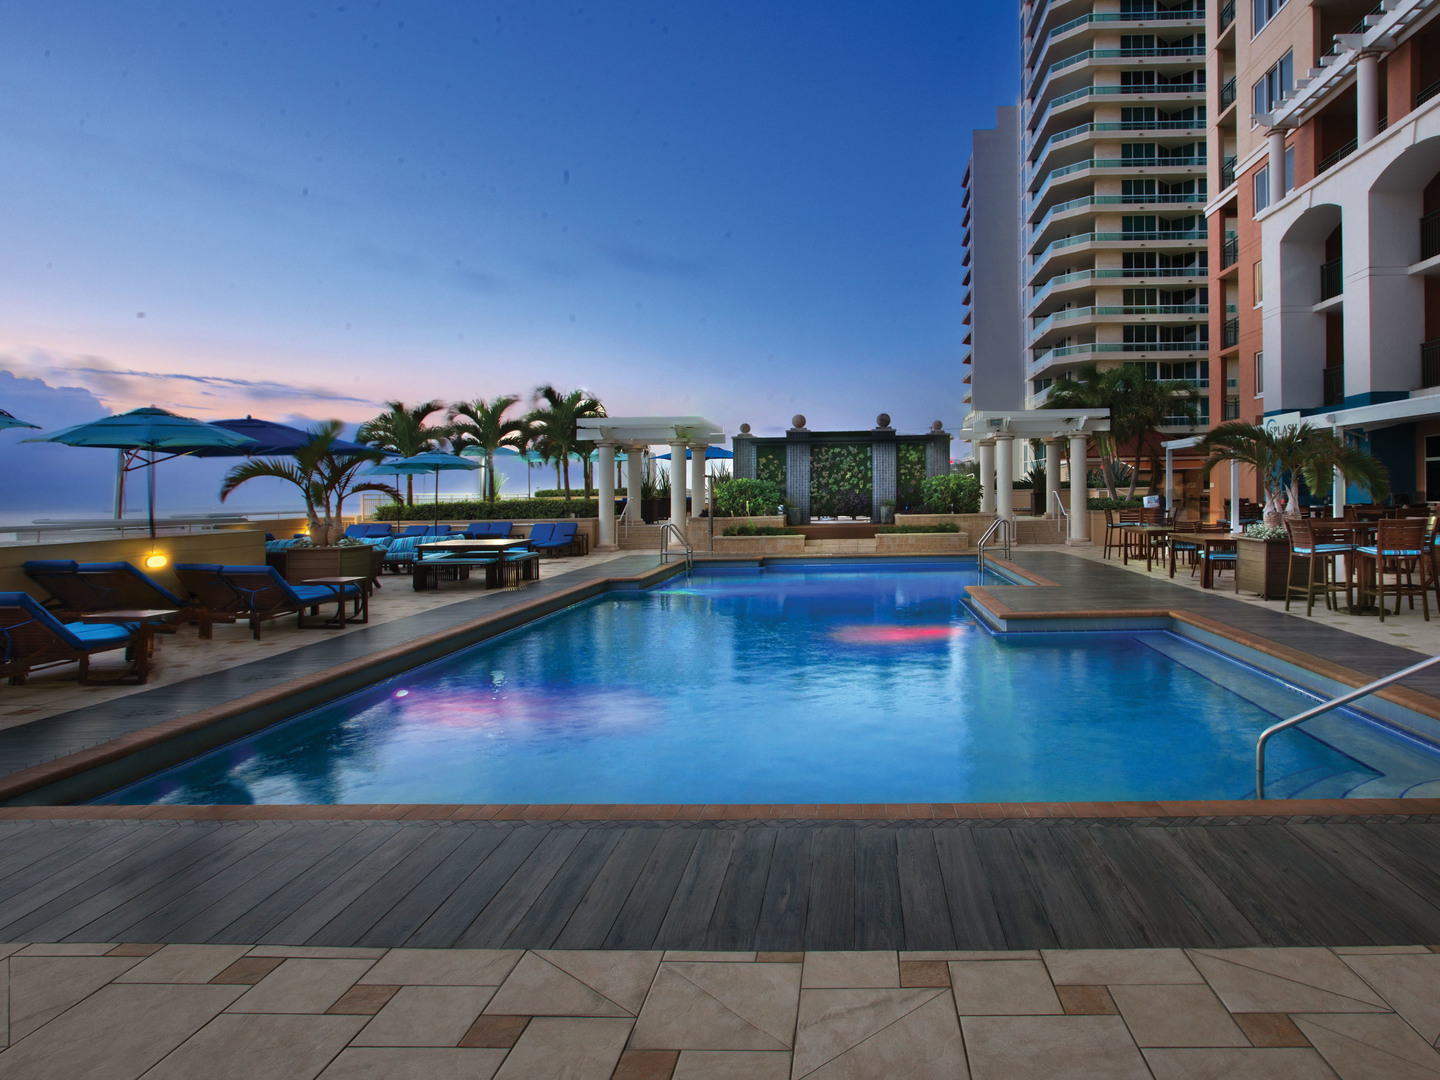 Marriott's BeachPlace Towers Pool. Marriott's BeachPlace Towers is located in Fort Lauderdale, Florida United States.